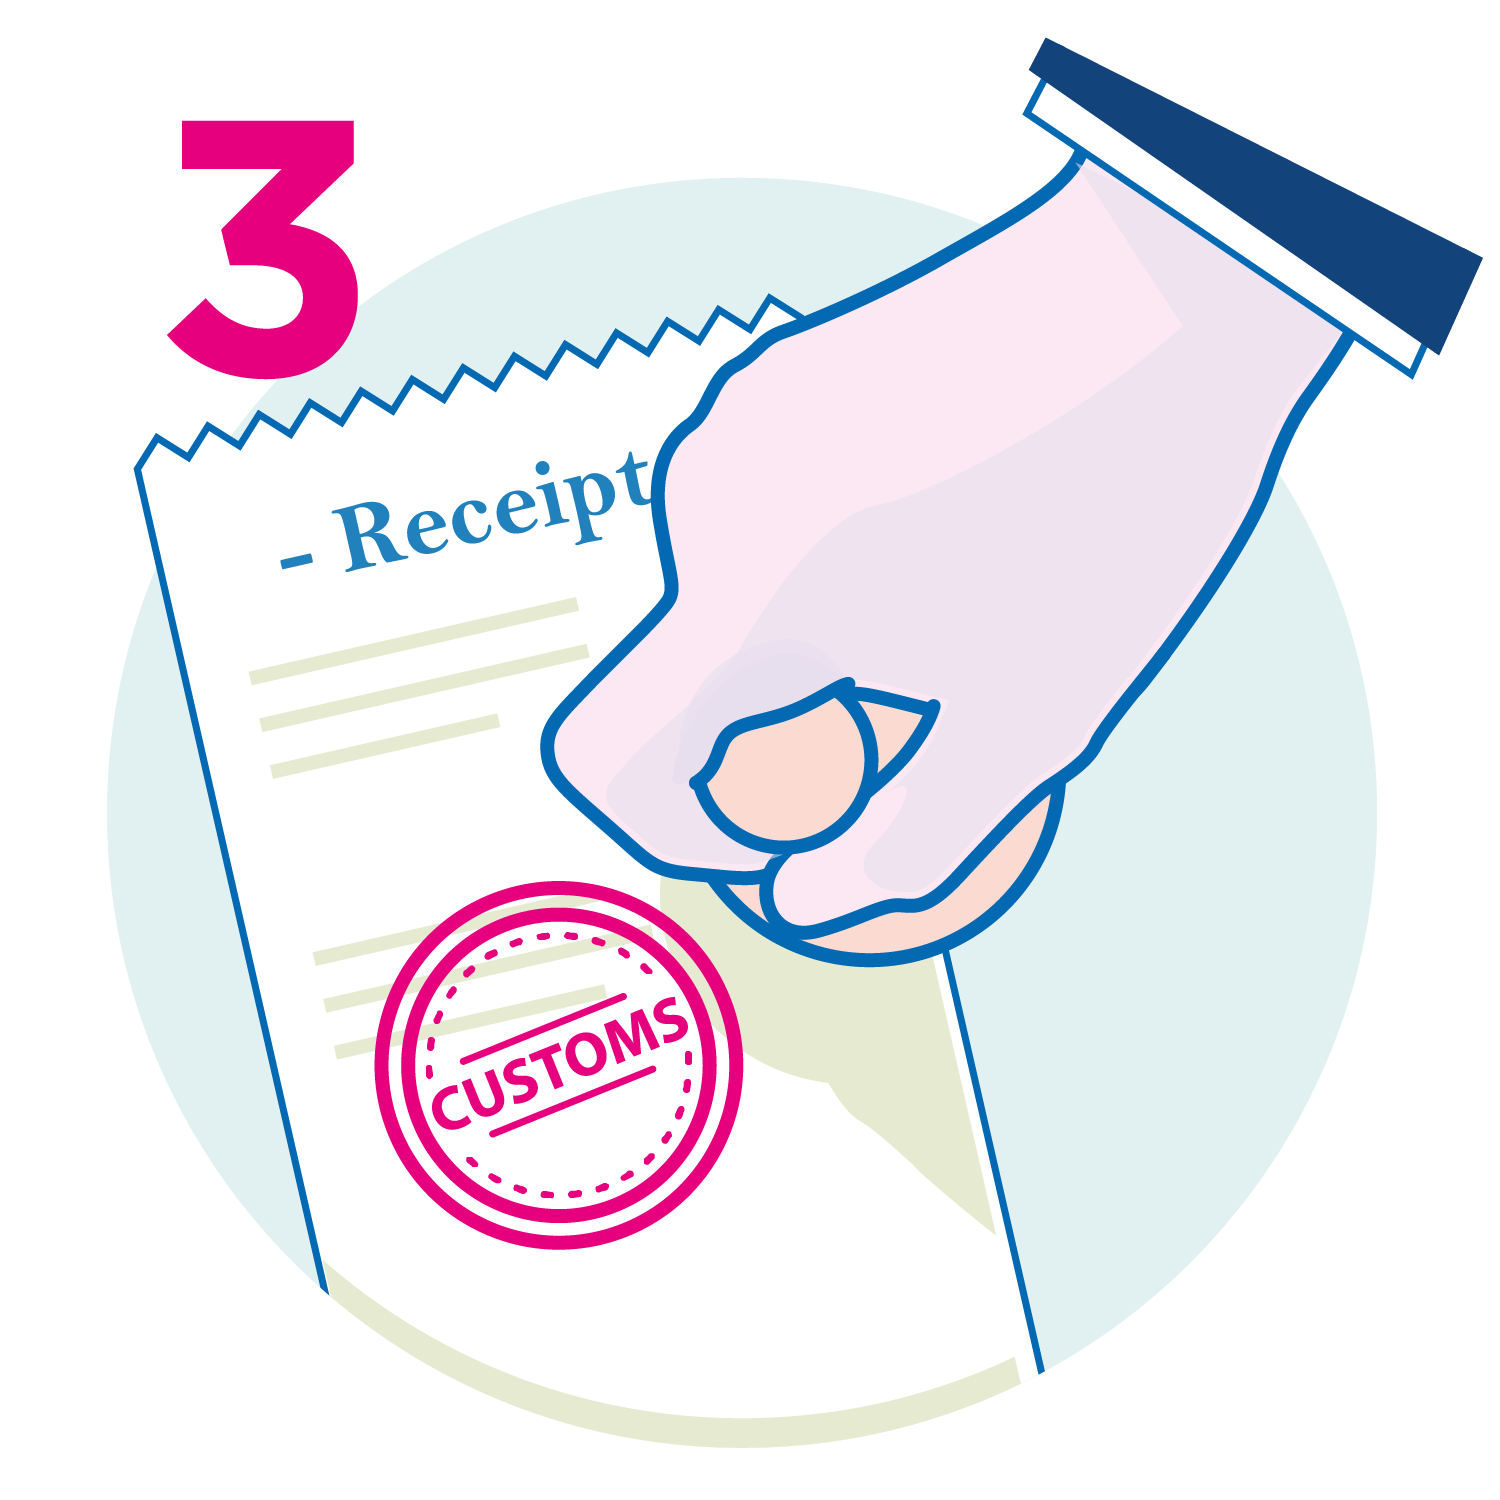 Get your receipt validated at customs